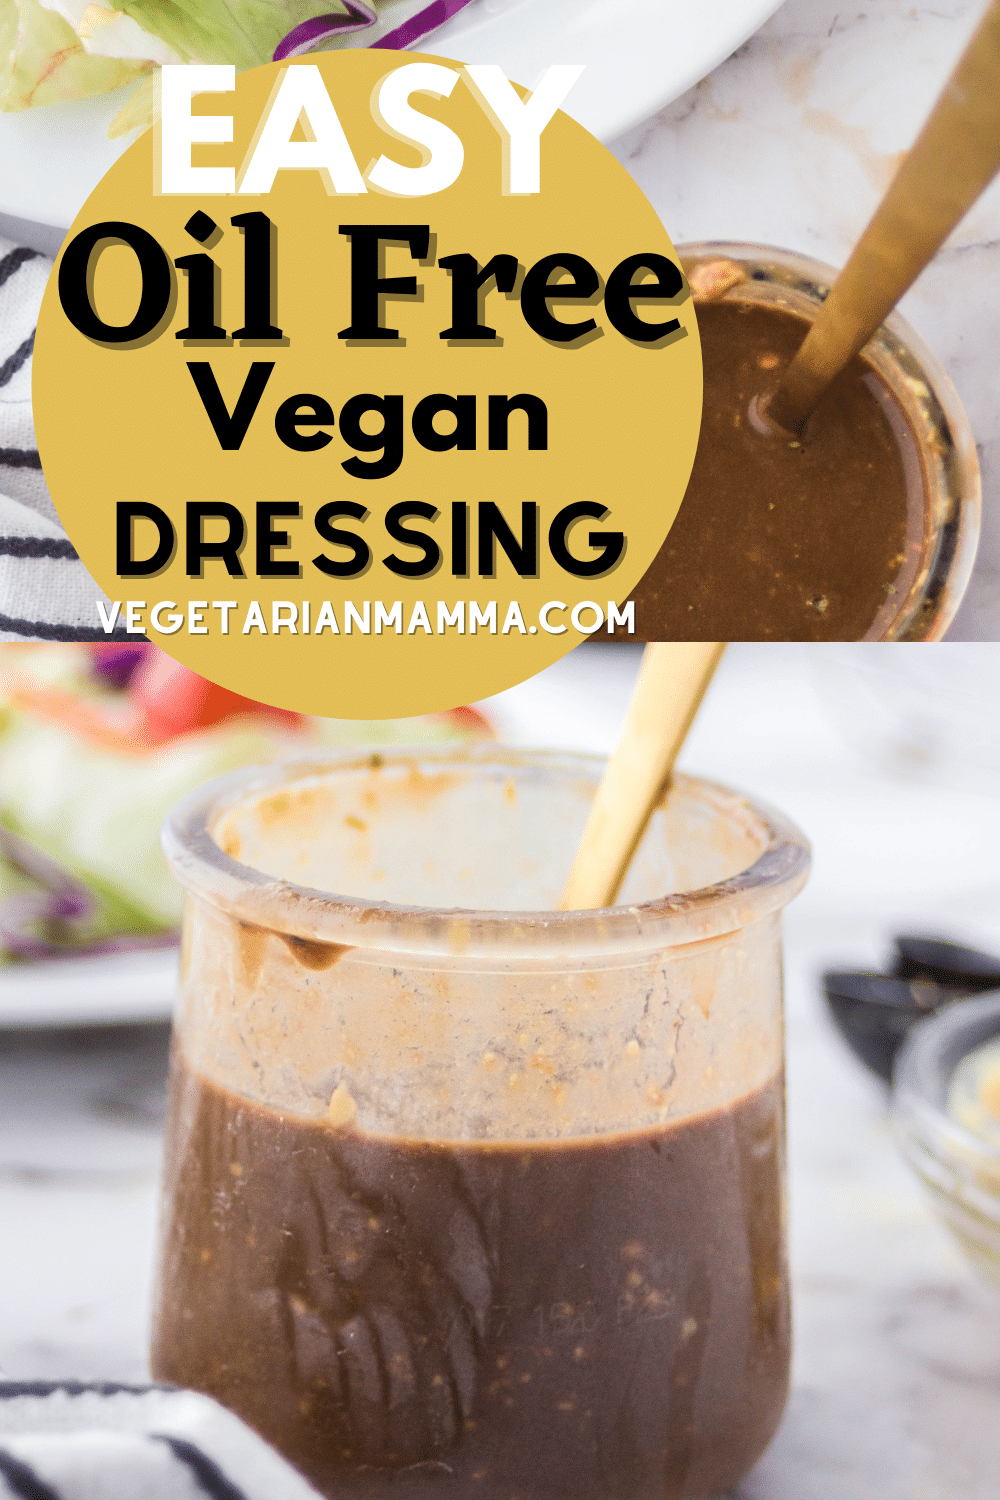 This vegan balsamic oil free salad dressing is low calorie and high in flavor. Packed with sweet and savory flavor notes, this will become your go-to salad dressing, and it's so easy to make. #salad #oilfreedressing